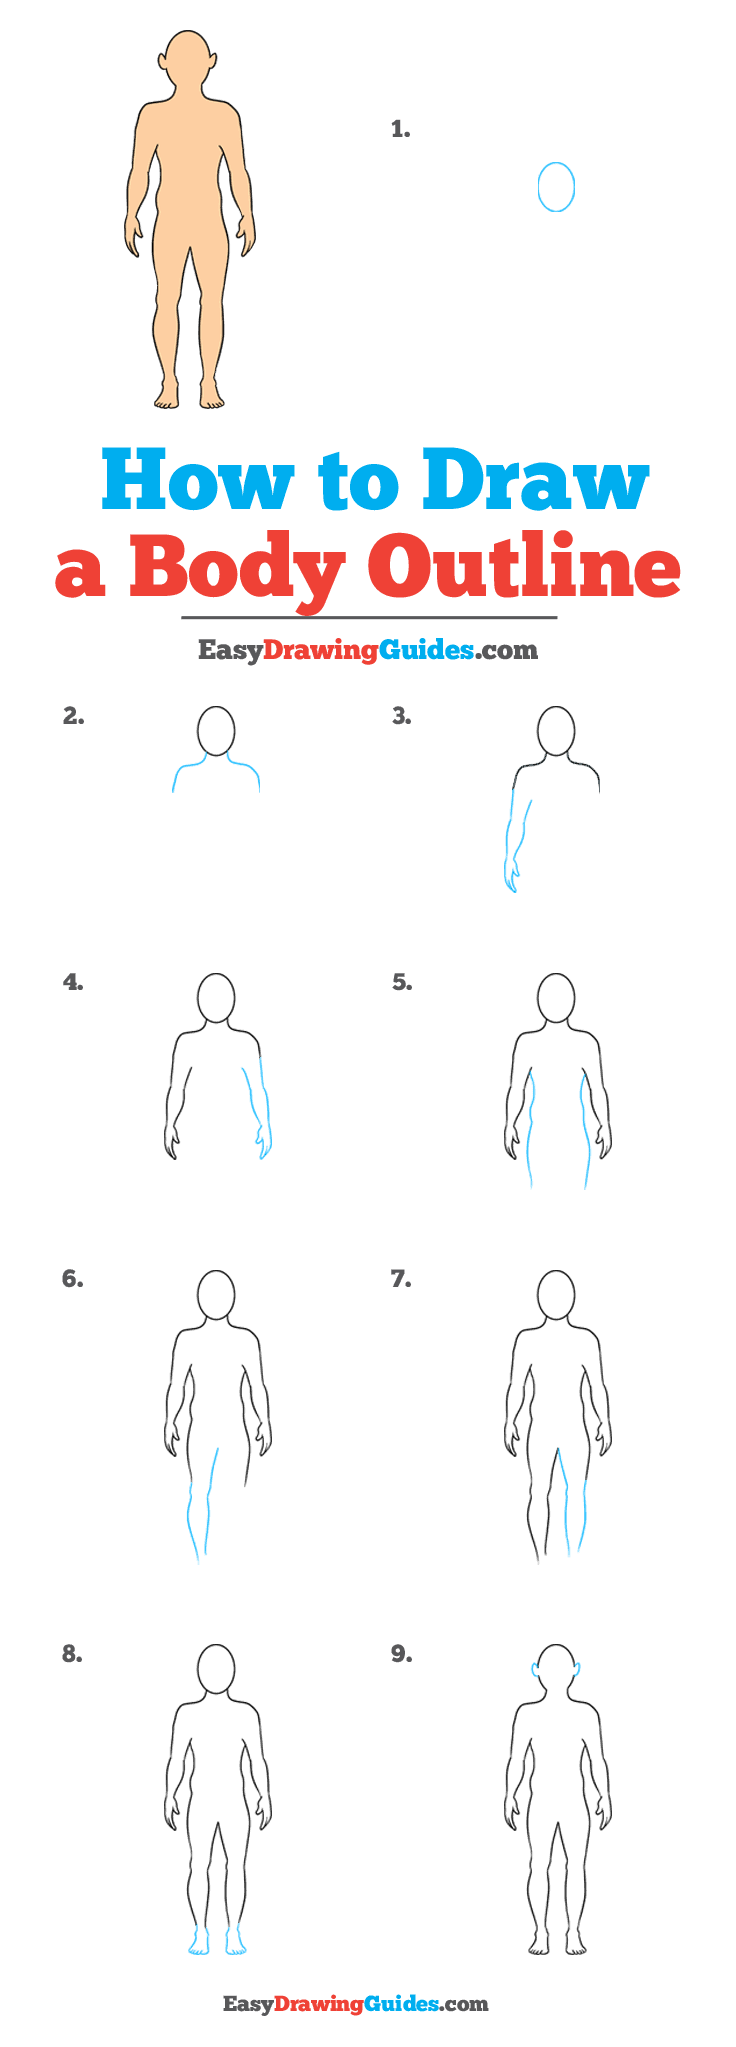 How to Draw a Body Outline Step by Step Tutorial Image